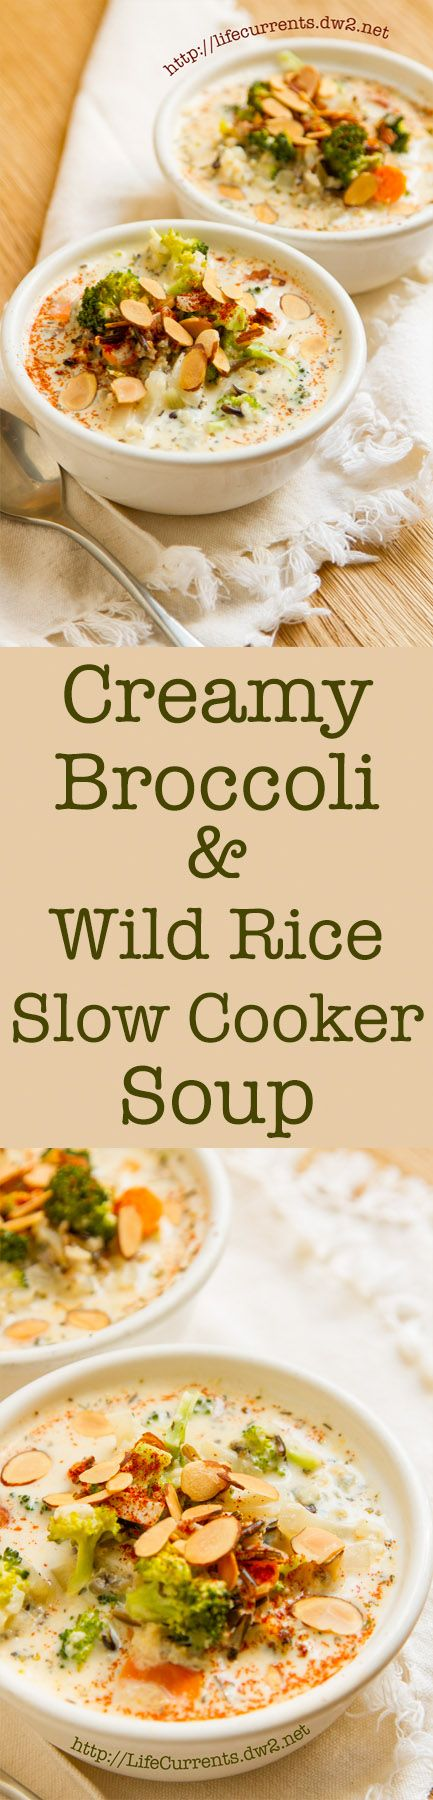 Creamy Broccoli and Wild Rice Slow Cooker Soup is a great warming soup that's filled with veggies and whole grain goodness!